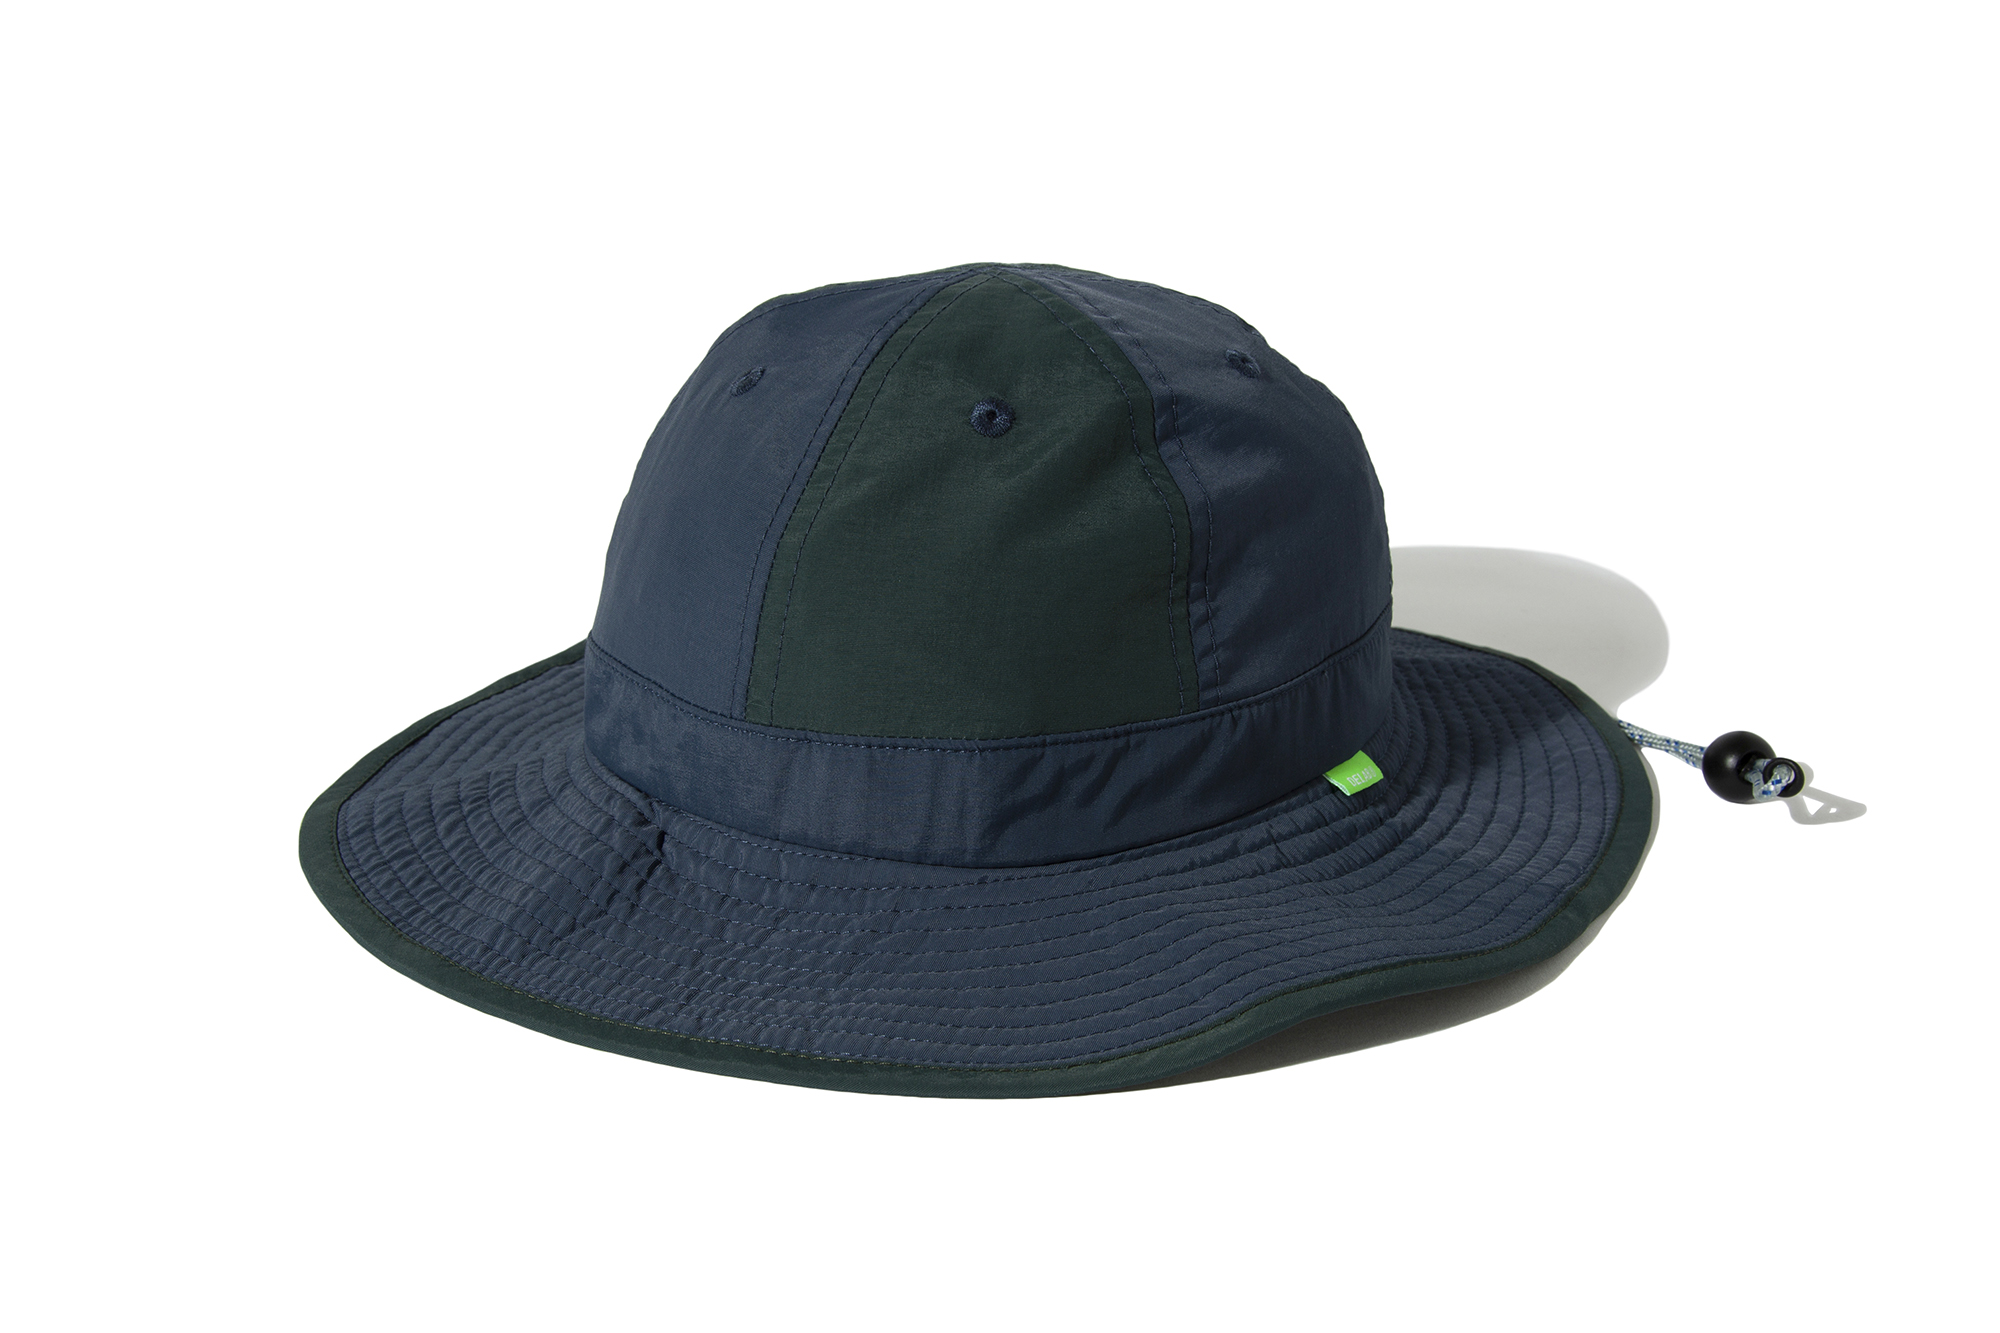 DeMarcoLab PYTHON HAT 2COLORS